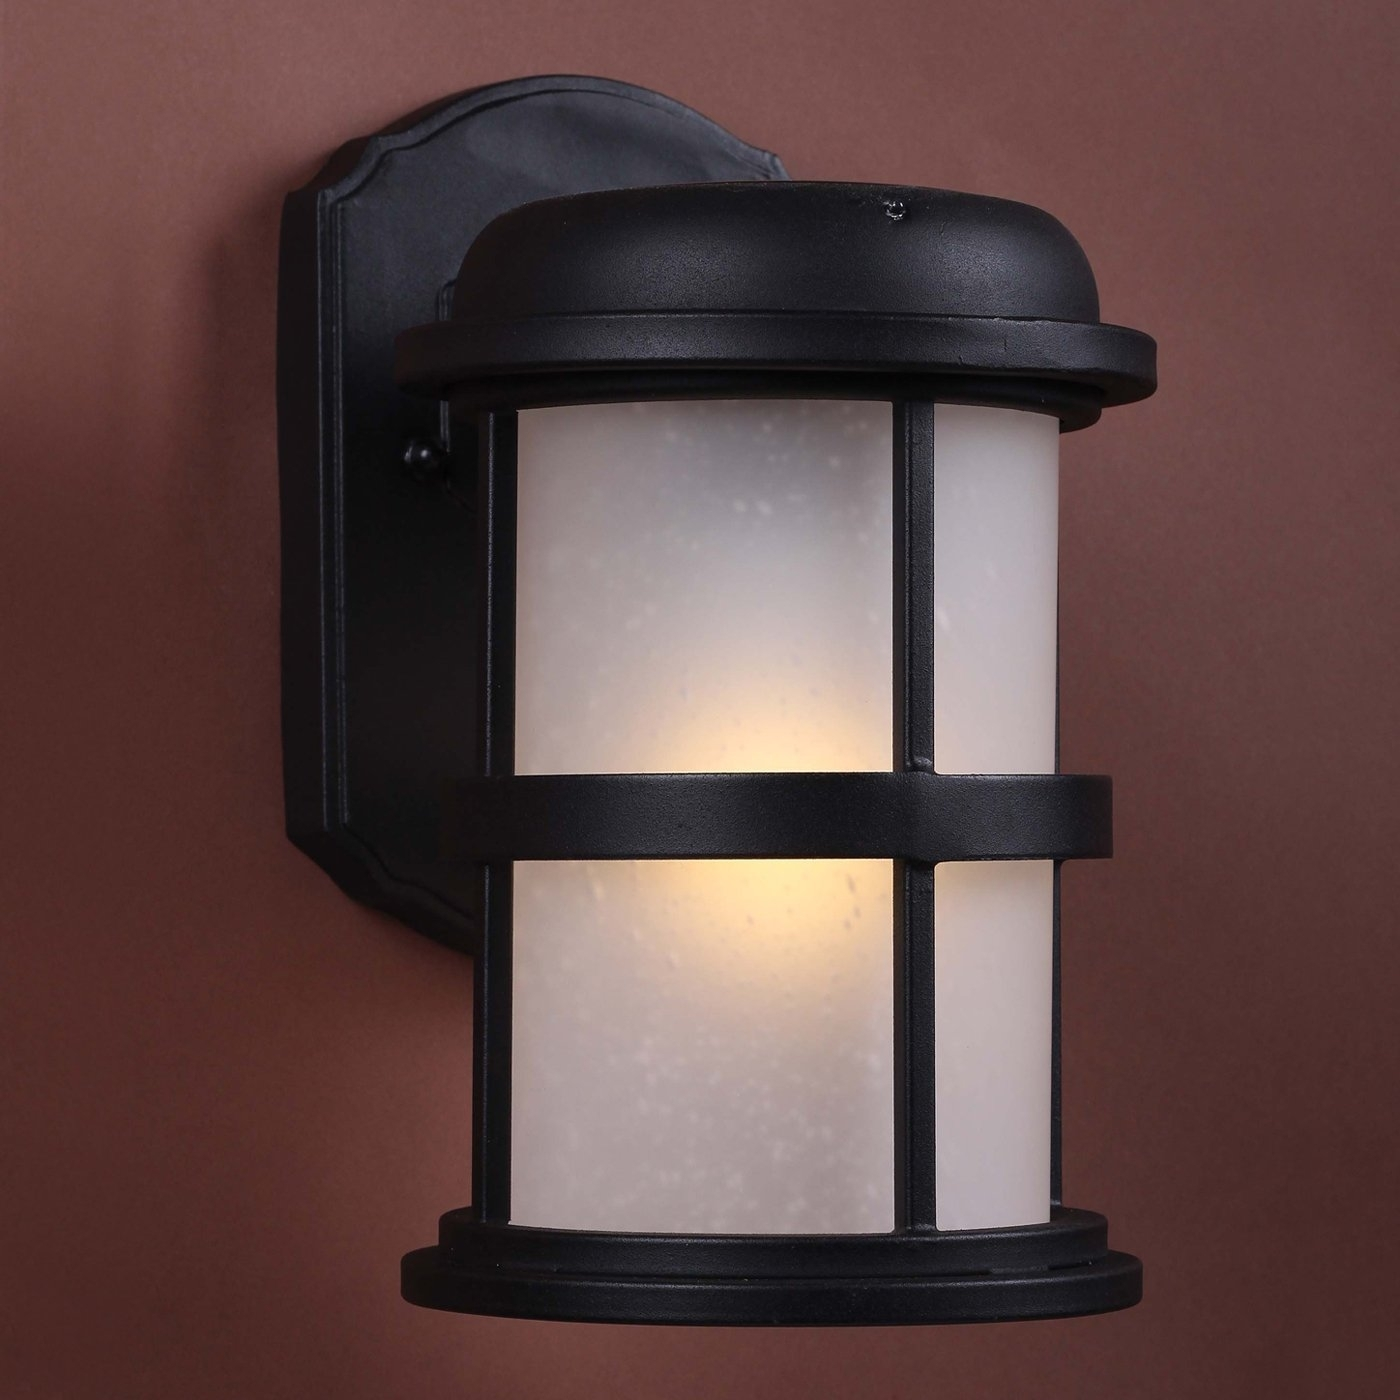 Solar Hybrid Led Outdoor Sconce, Black, | Fire Tower : Exterior With Regard To Solar Led Outdoor Wall Lighting (#12 of 15)